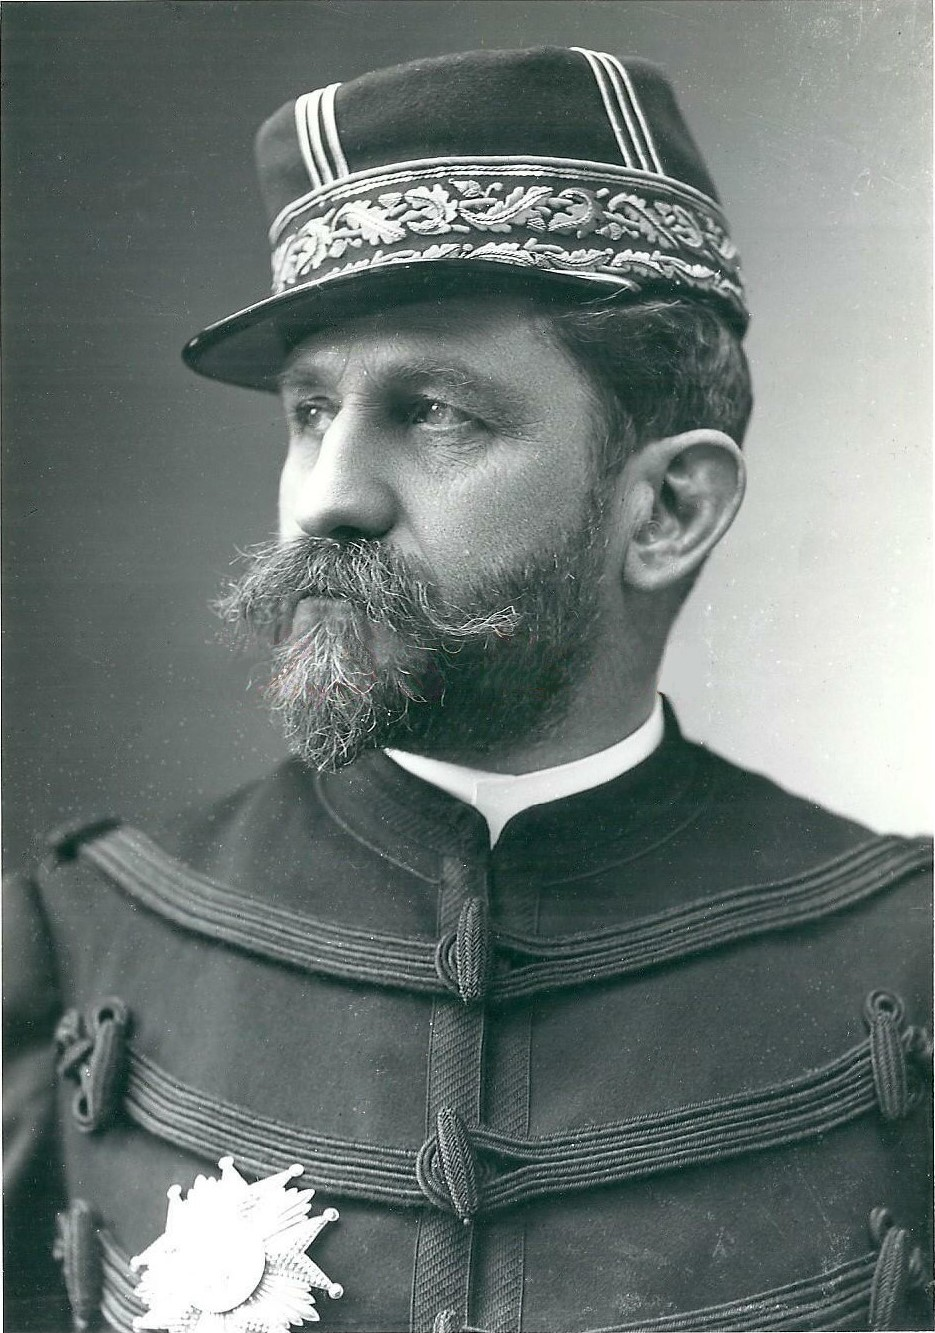 http://upload.wikimedia.org/wikipedia/commons/7/7e/Georges_Boulanger_Nadar.jpg